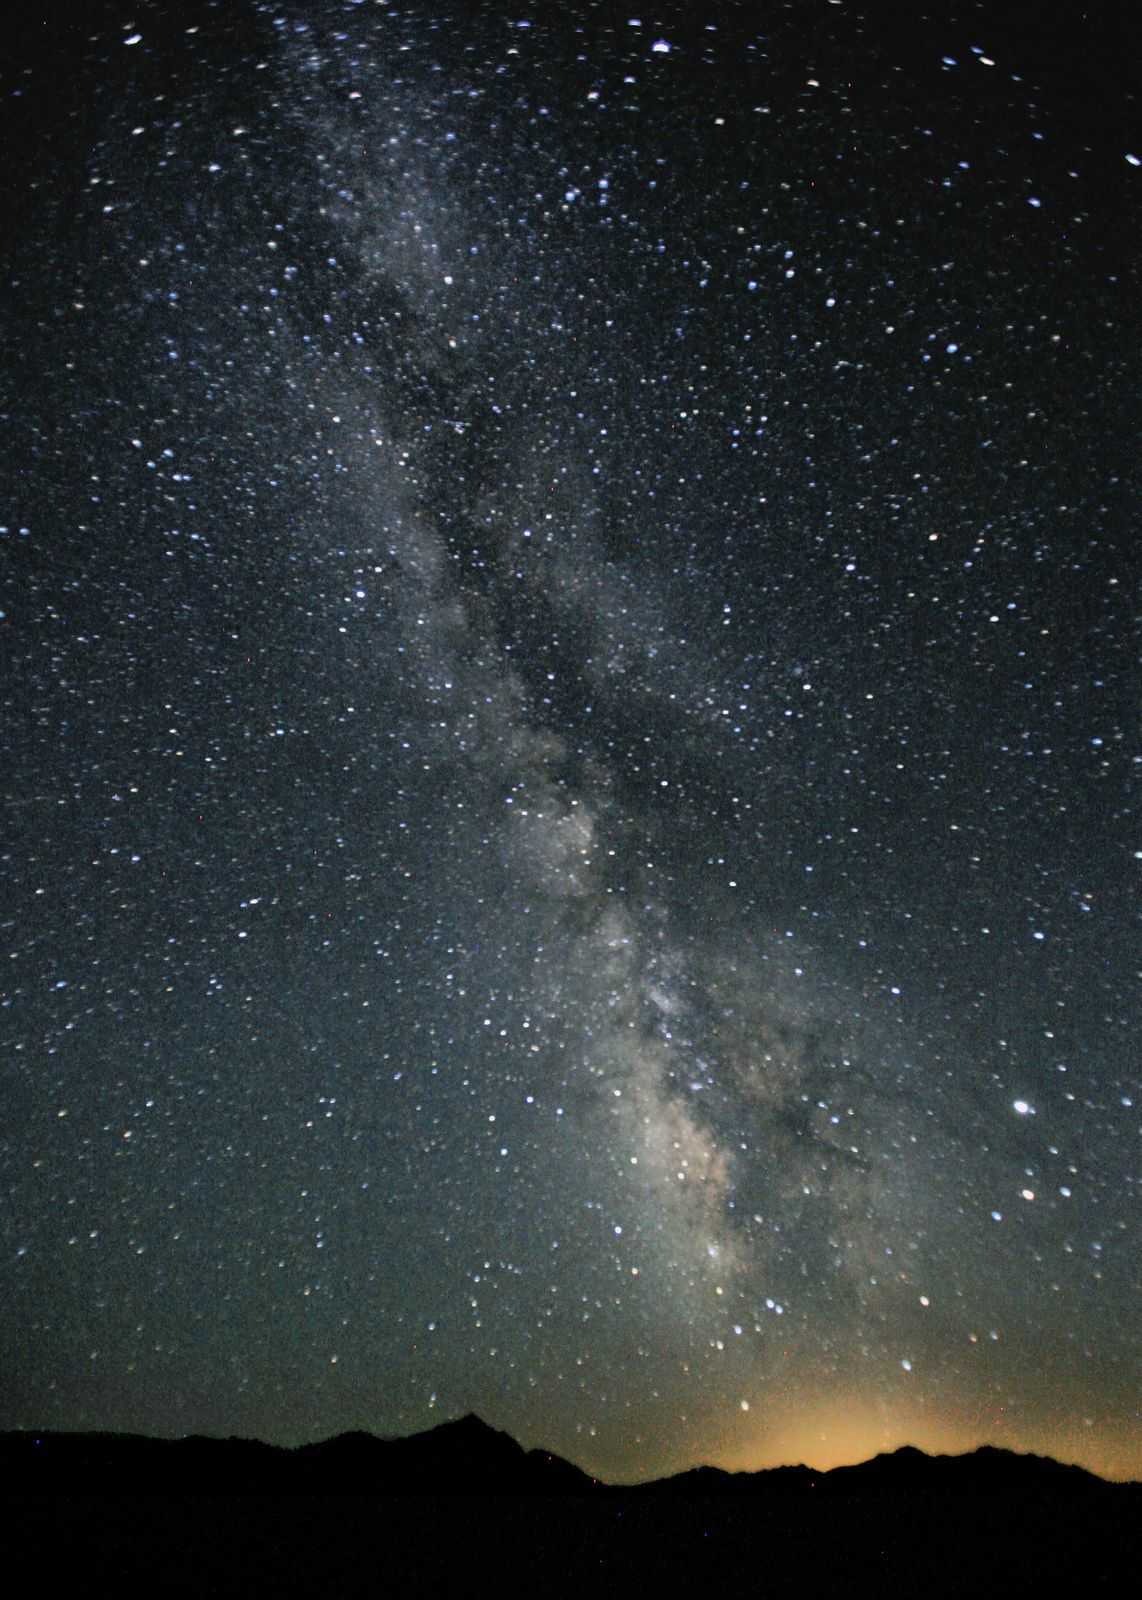 Photograph of the Milky Way in the night sky over Black Rock Desert, Nevada by Steve Jurveston